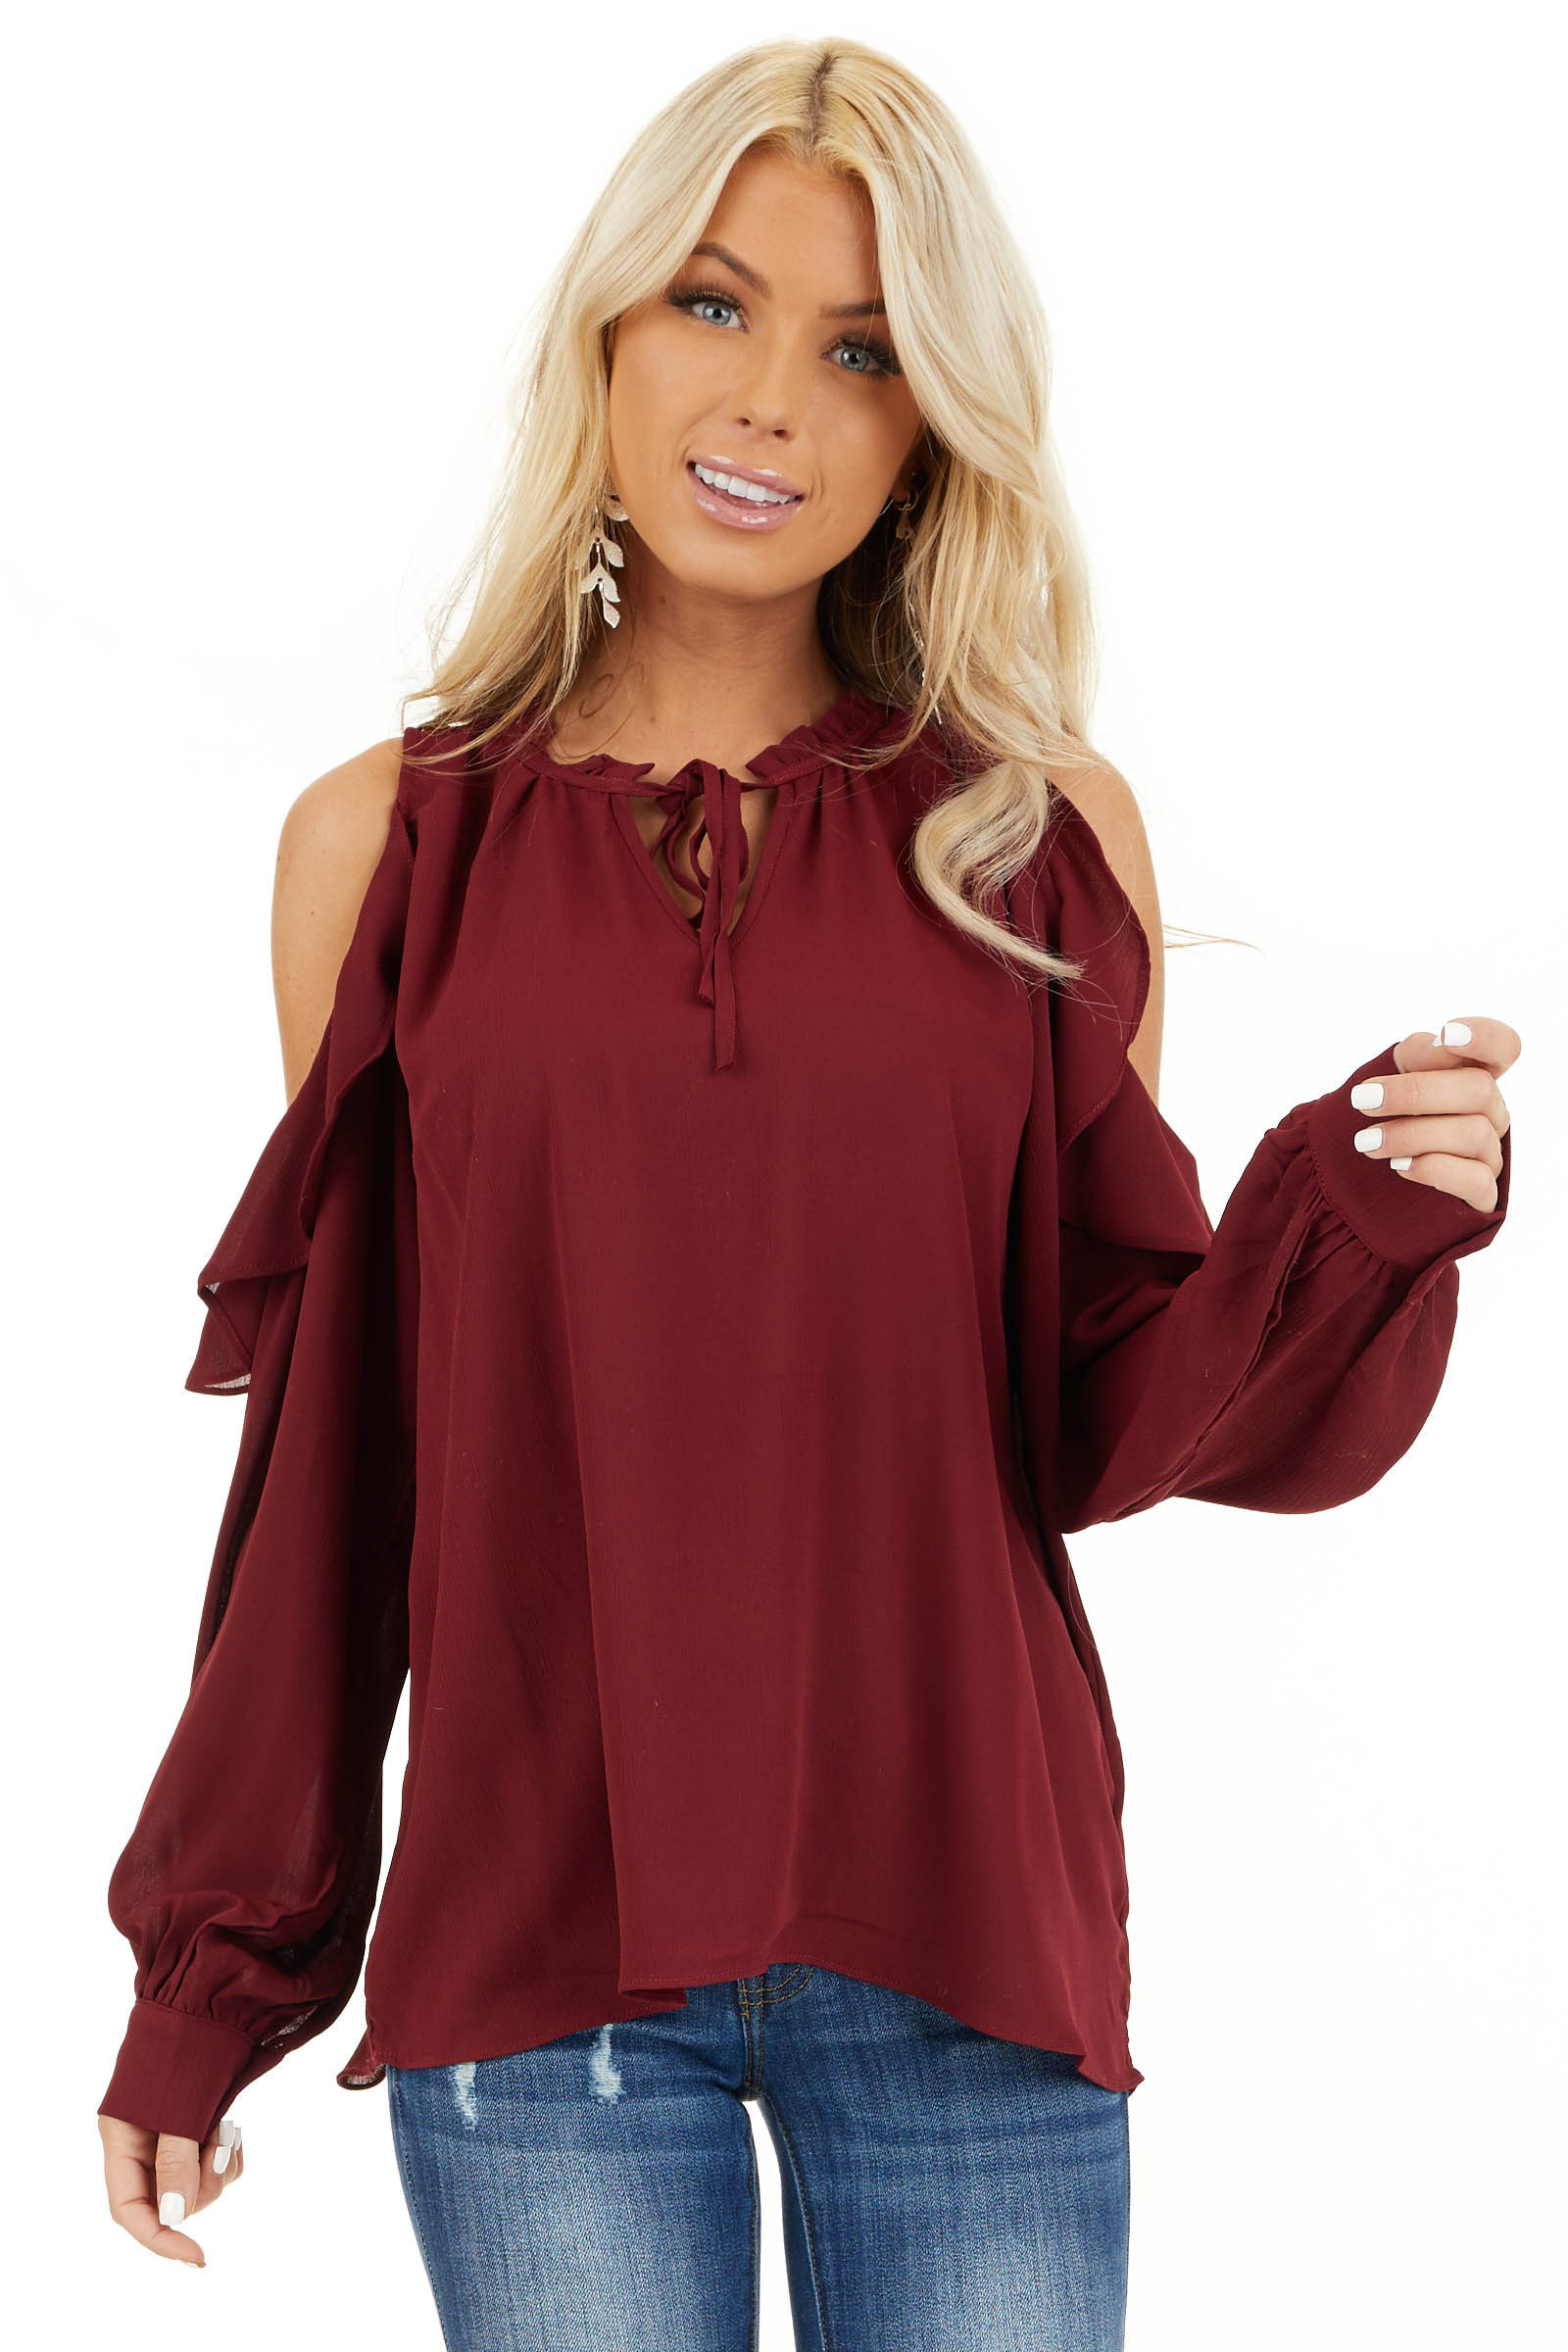 Wine Long Sleeve Cold Shoulder Top with Ruffle Details front close up